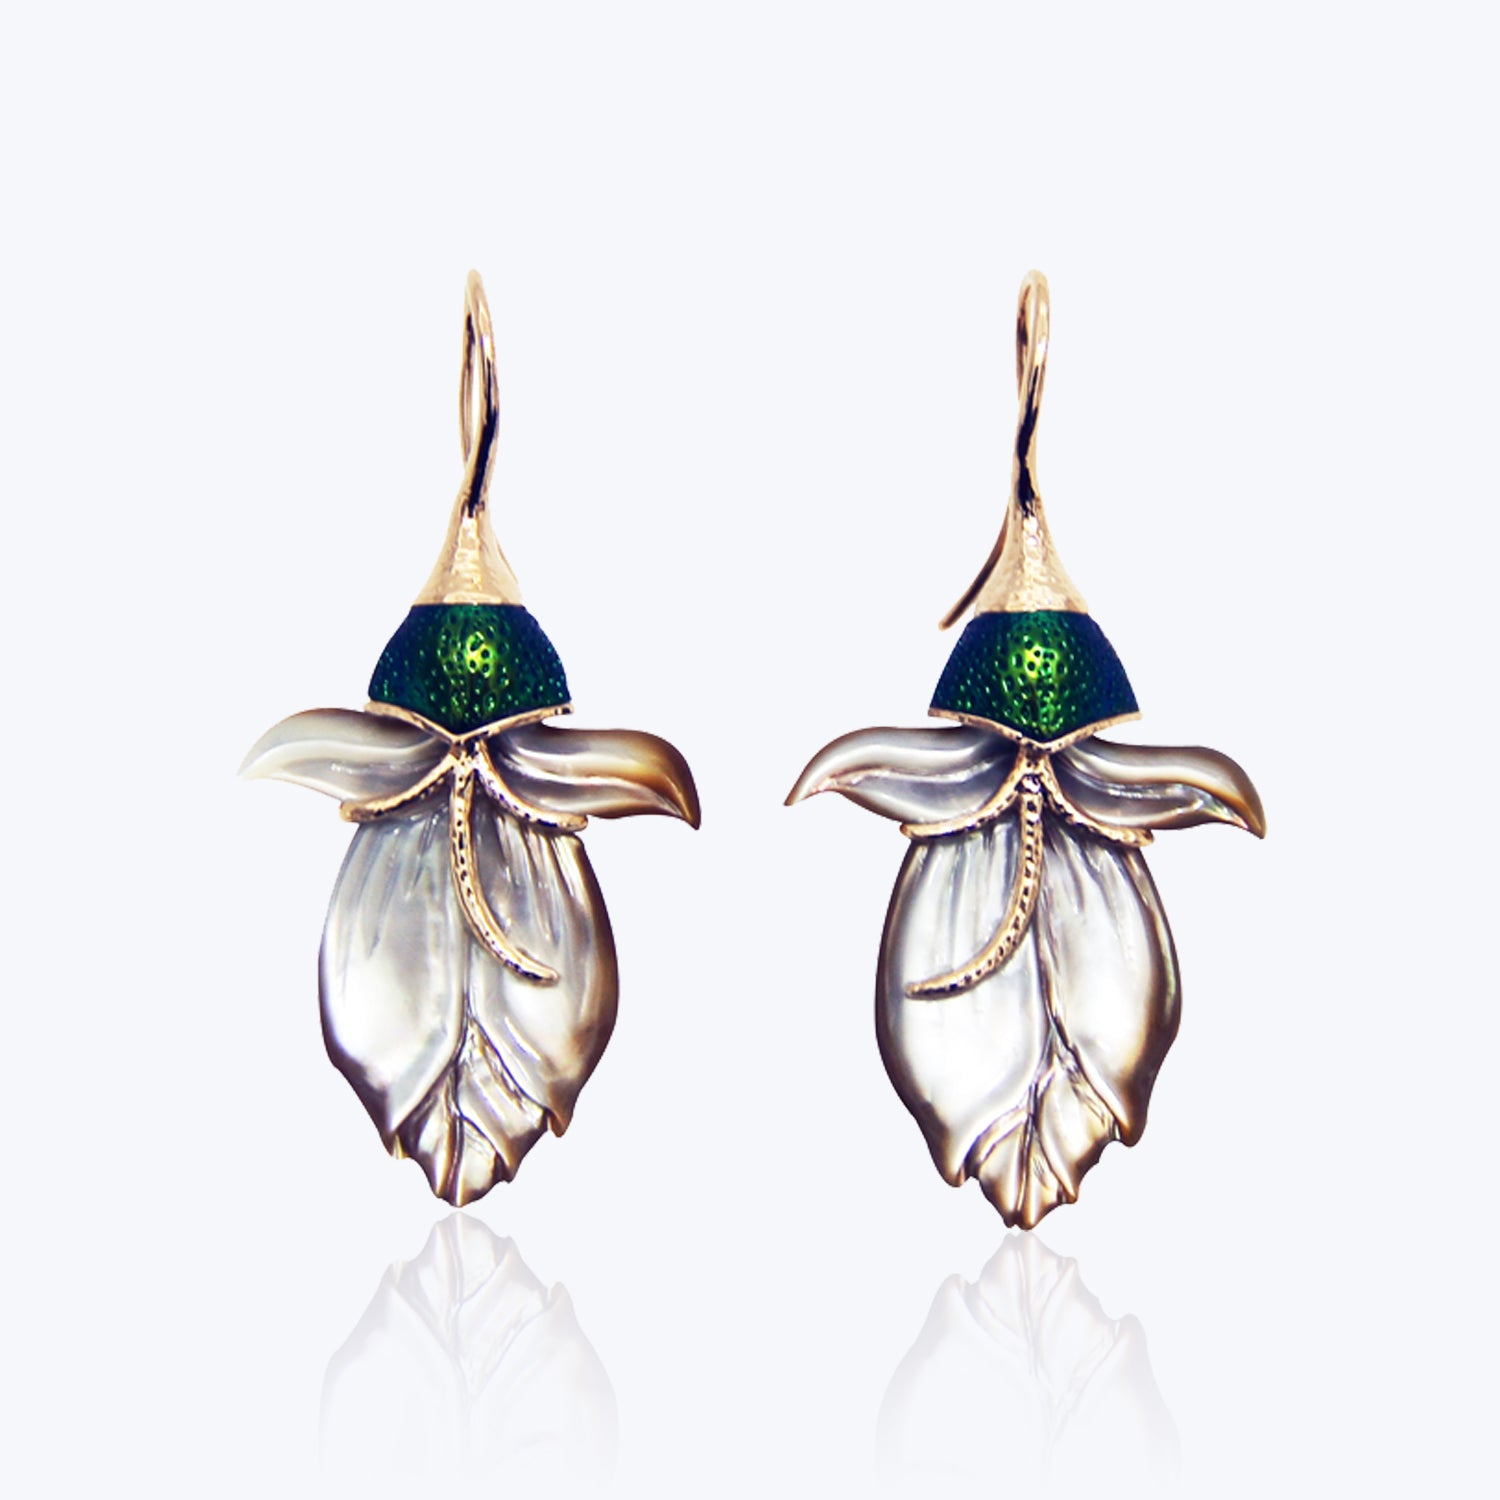 Carved shell earrings with Scarab